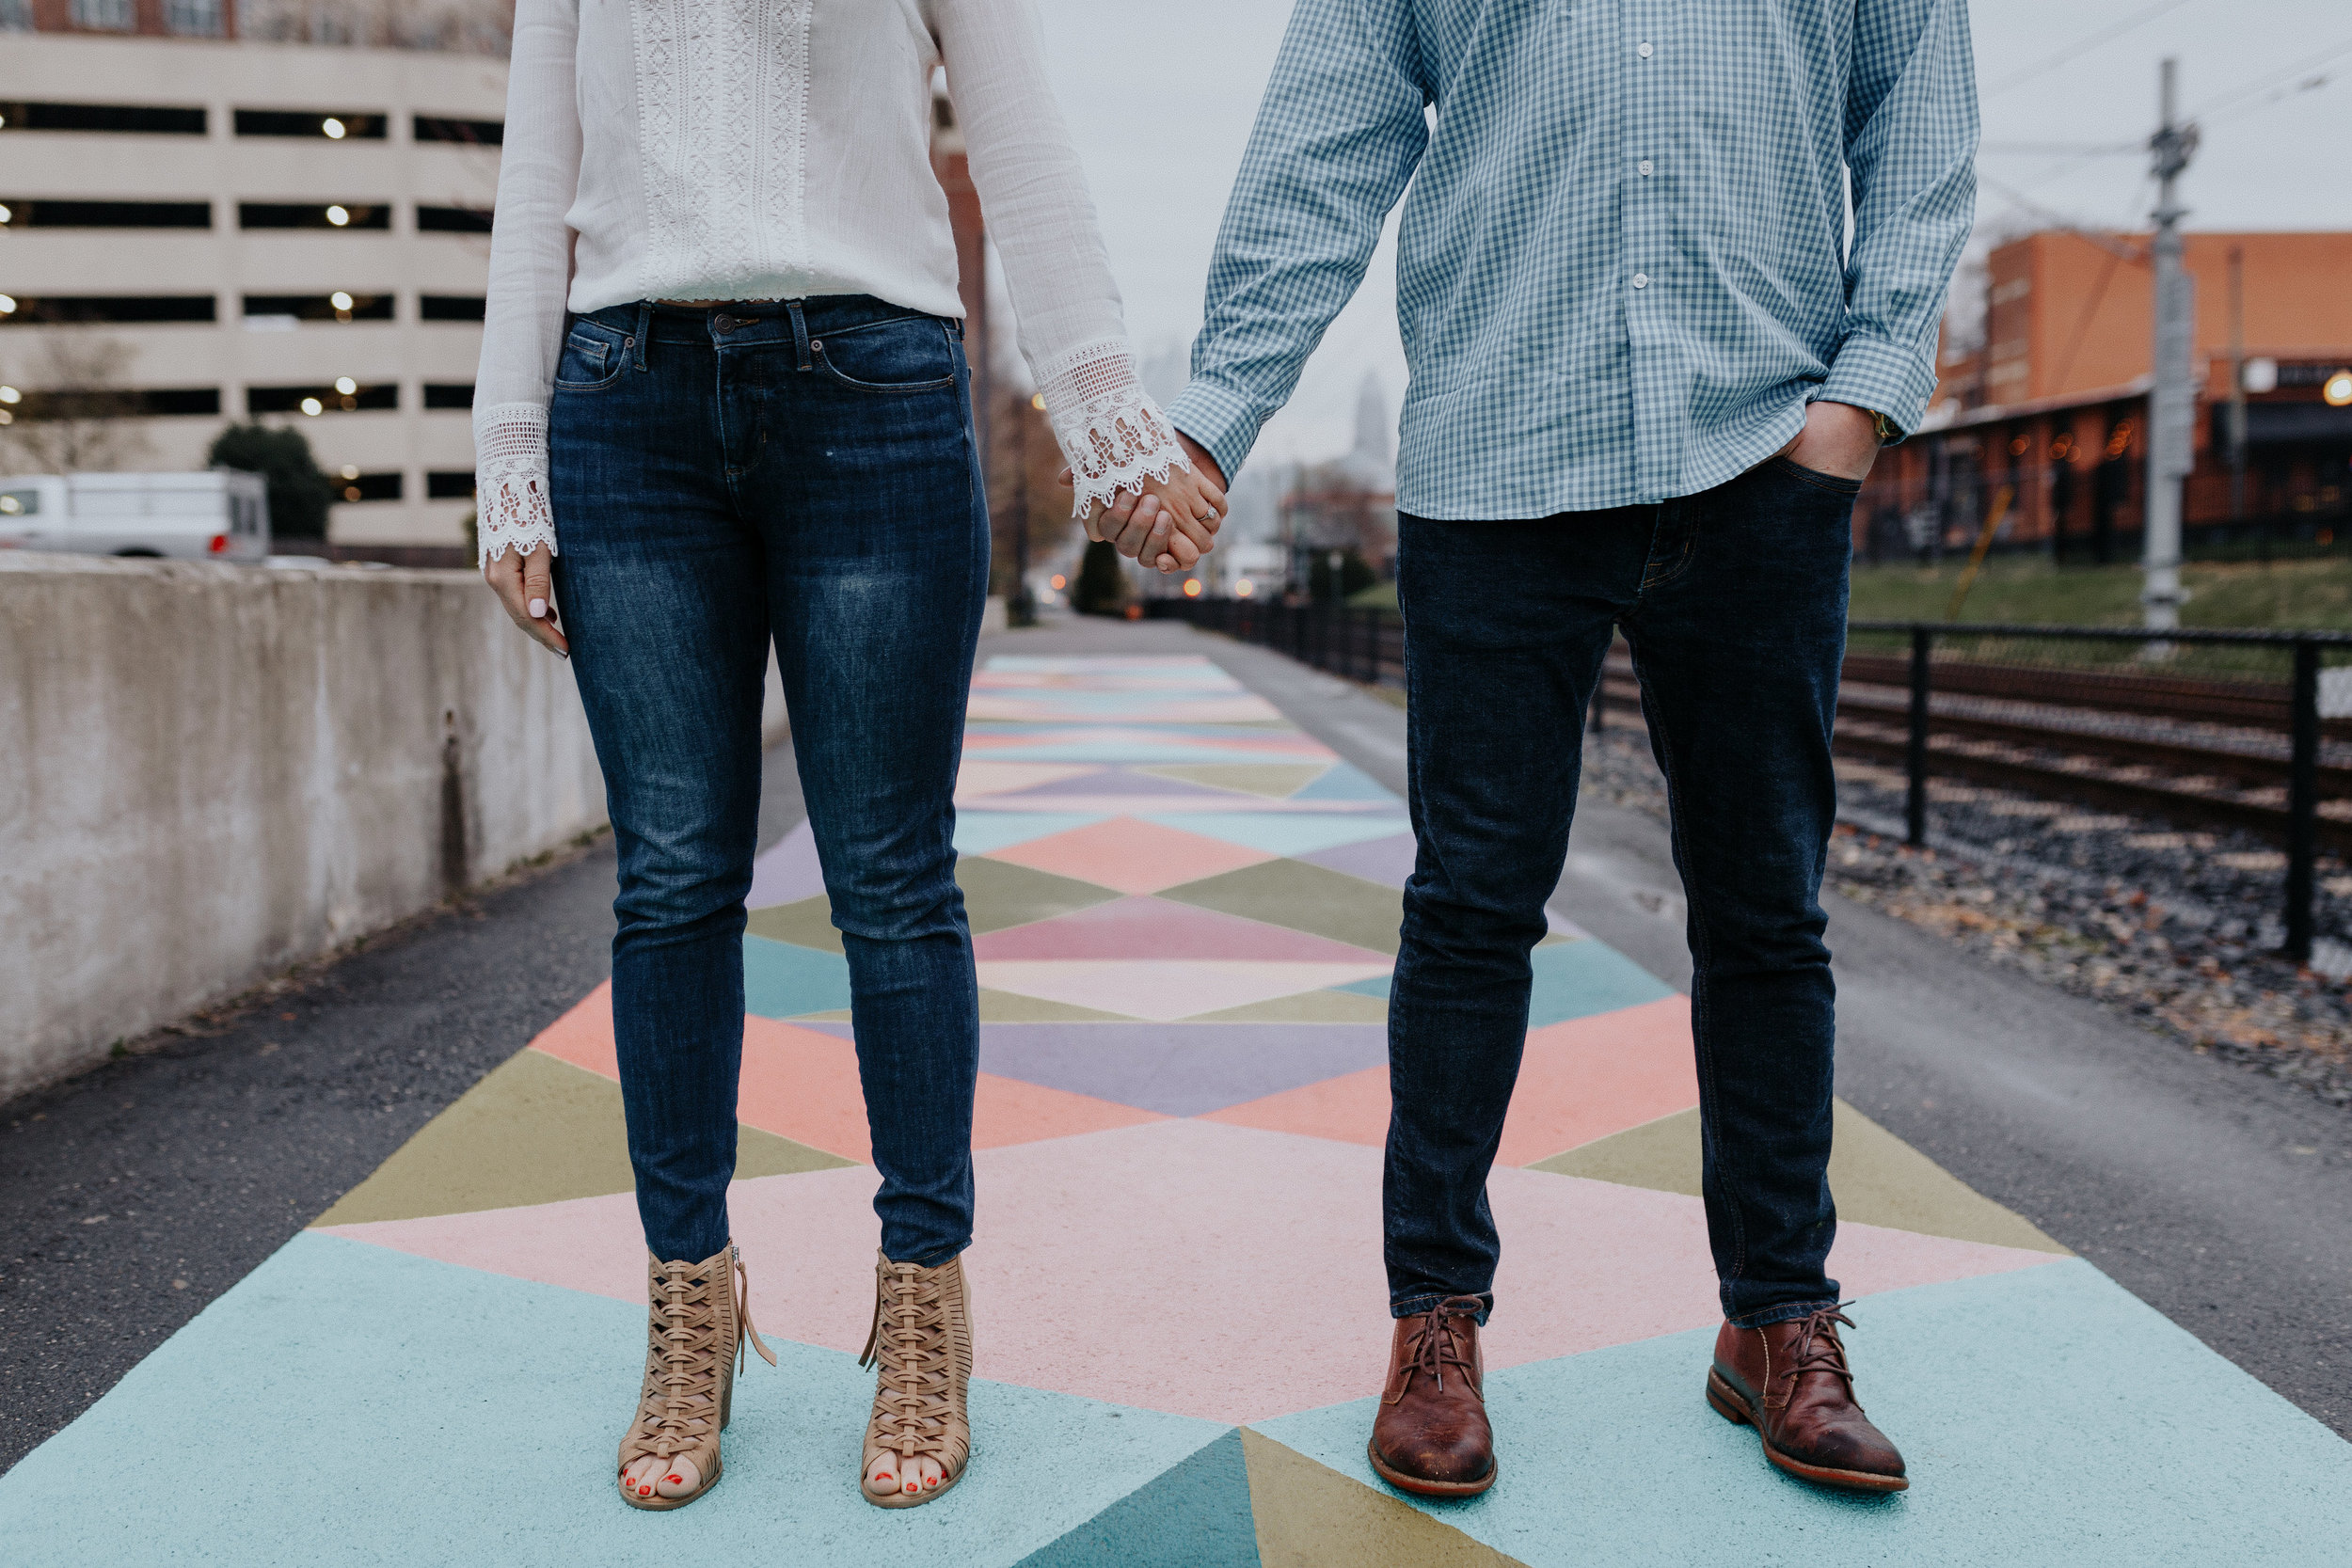 charlotte photographer in south end for engagement sessions and needs locations